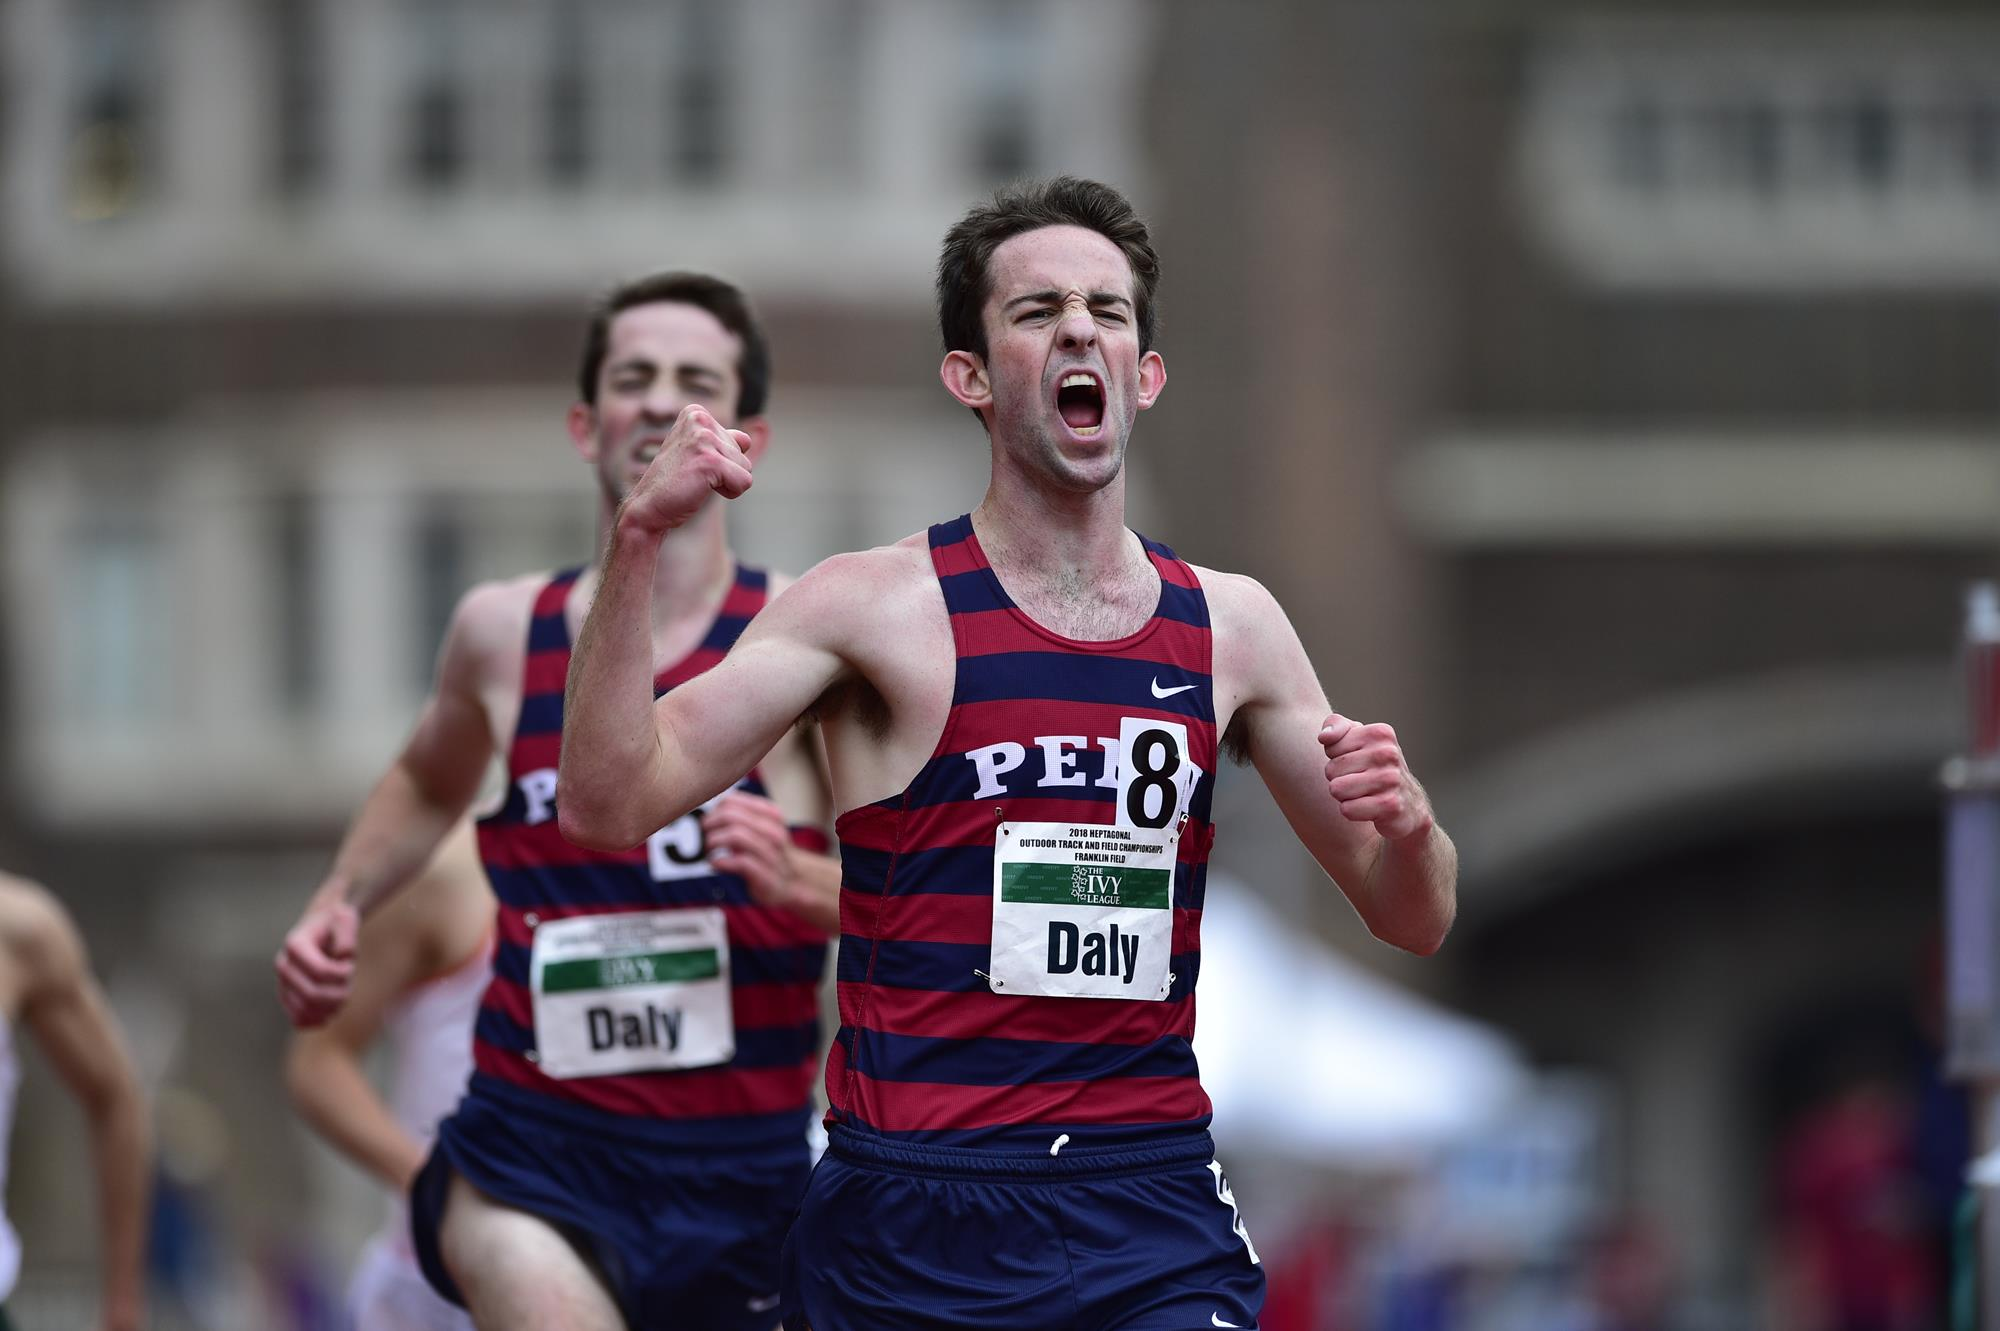 Will Daly - Men s Track and Field - University of Pennsylvania Athletics 3b458af93be07